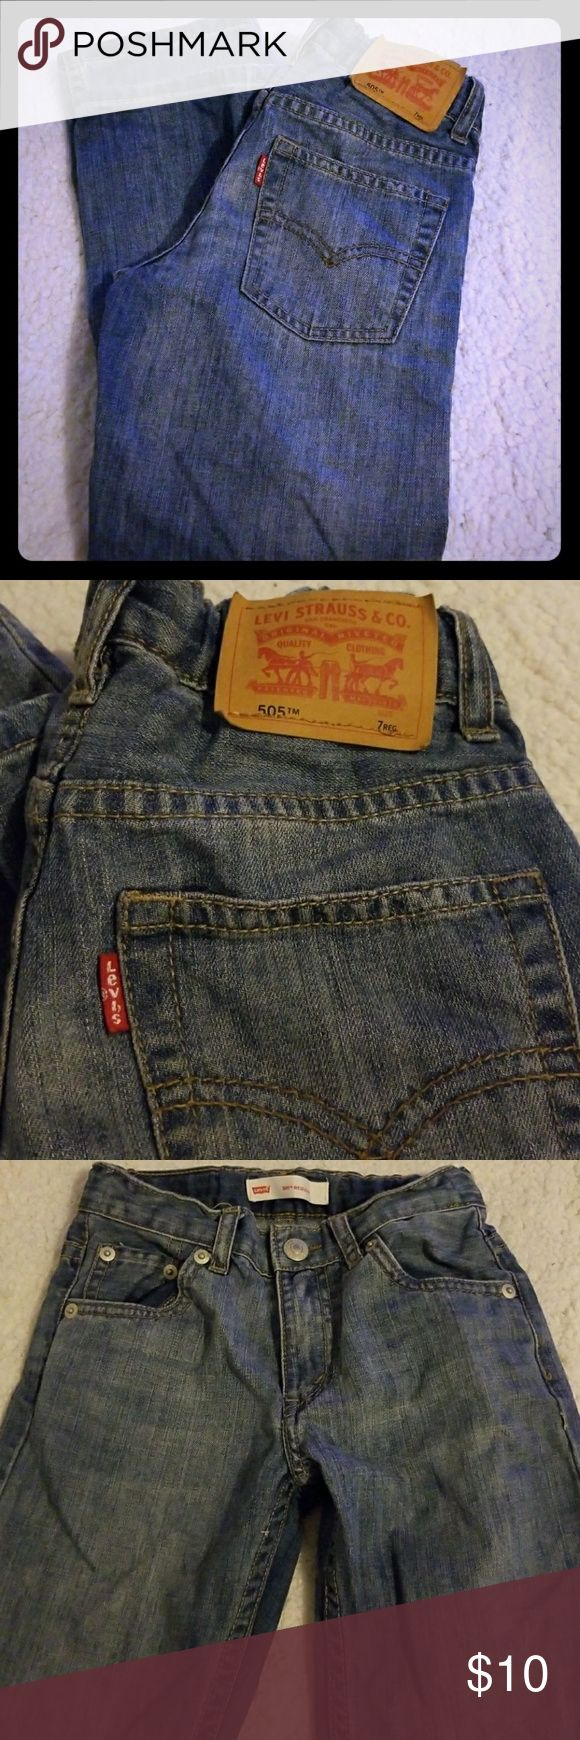 LEVIS 505 JEANS Fantastic jeans.  100% cotton. Adjustable elastic band on the inside.  No rips, holes or stains. Levi's Bottoms Jeans